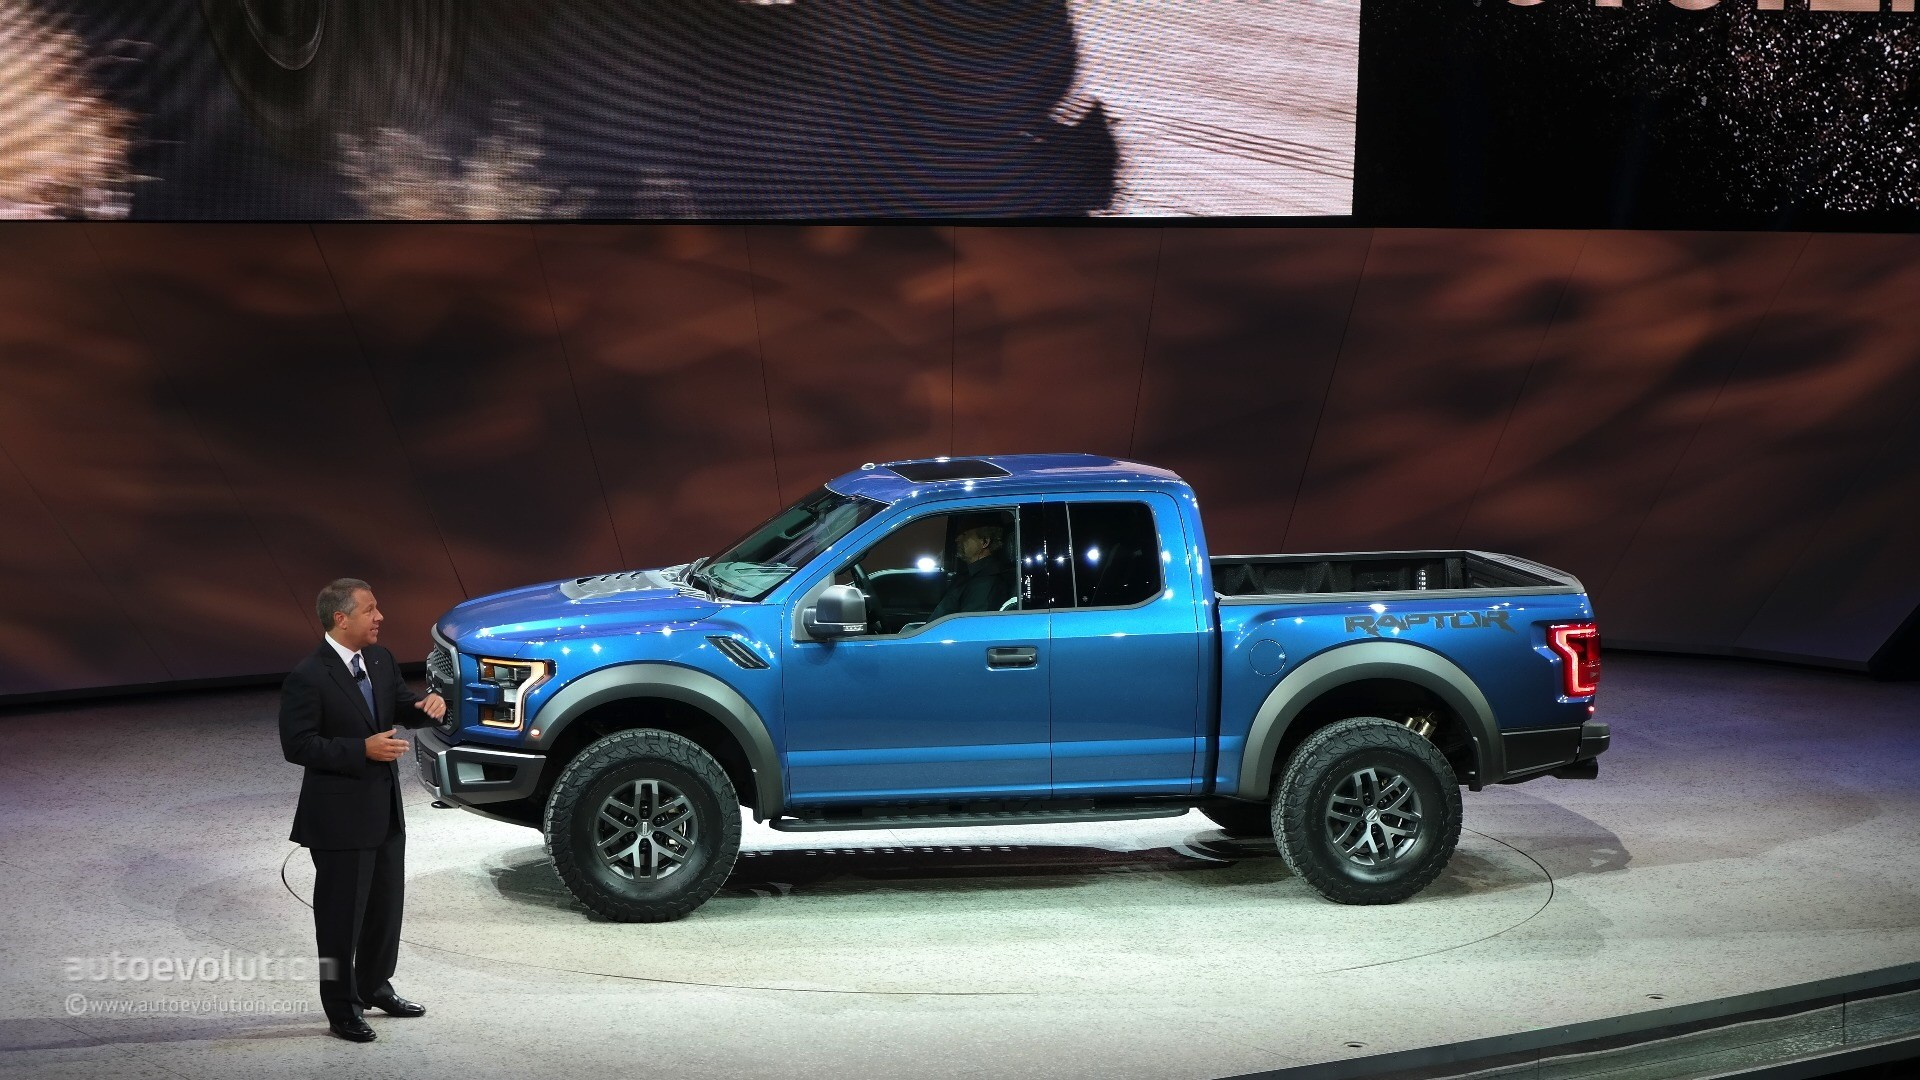 Report: 2018 Ford F-150 Raptor Getting New Rear Suspension ... on